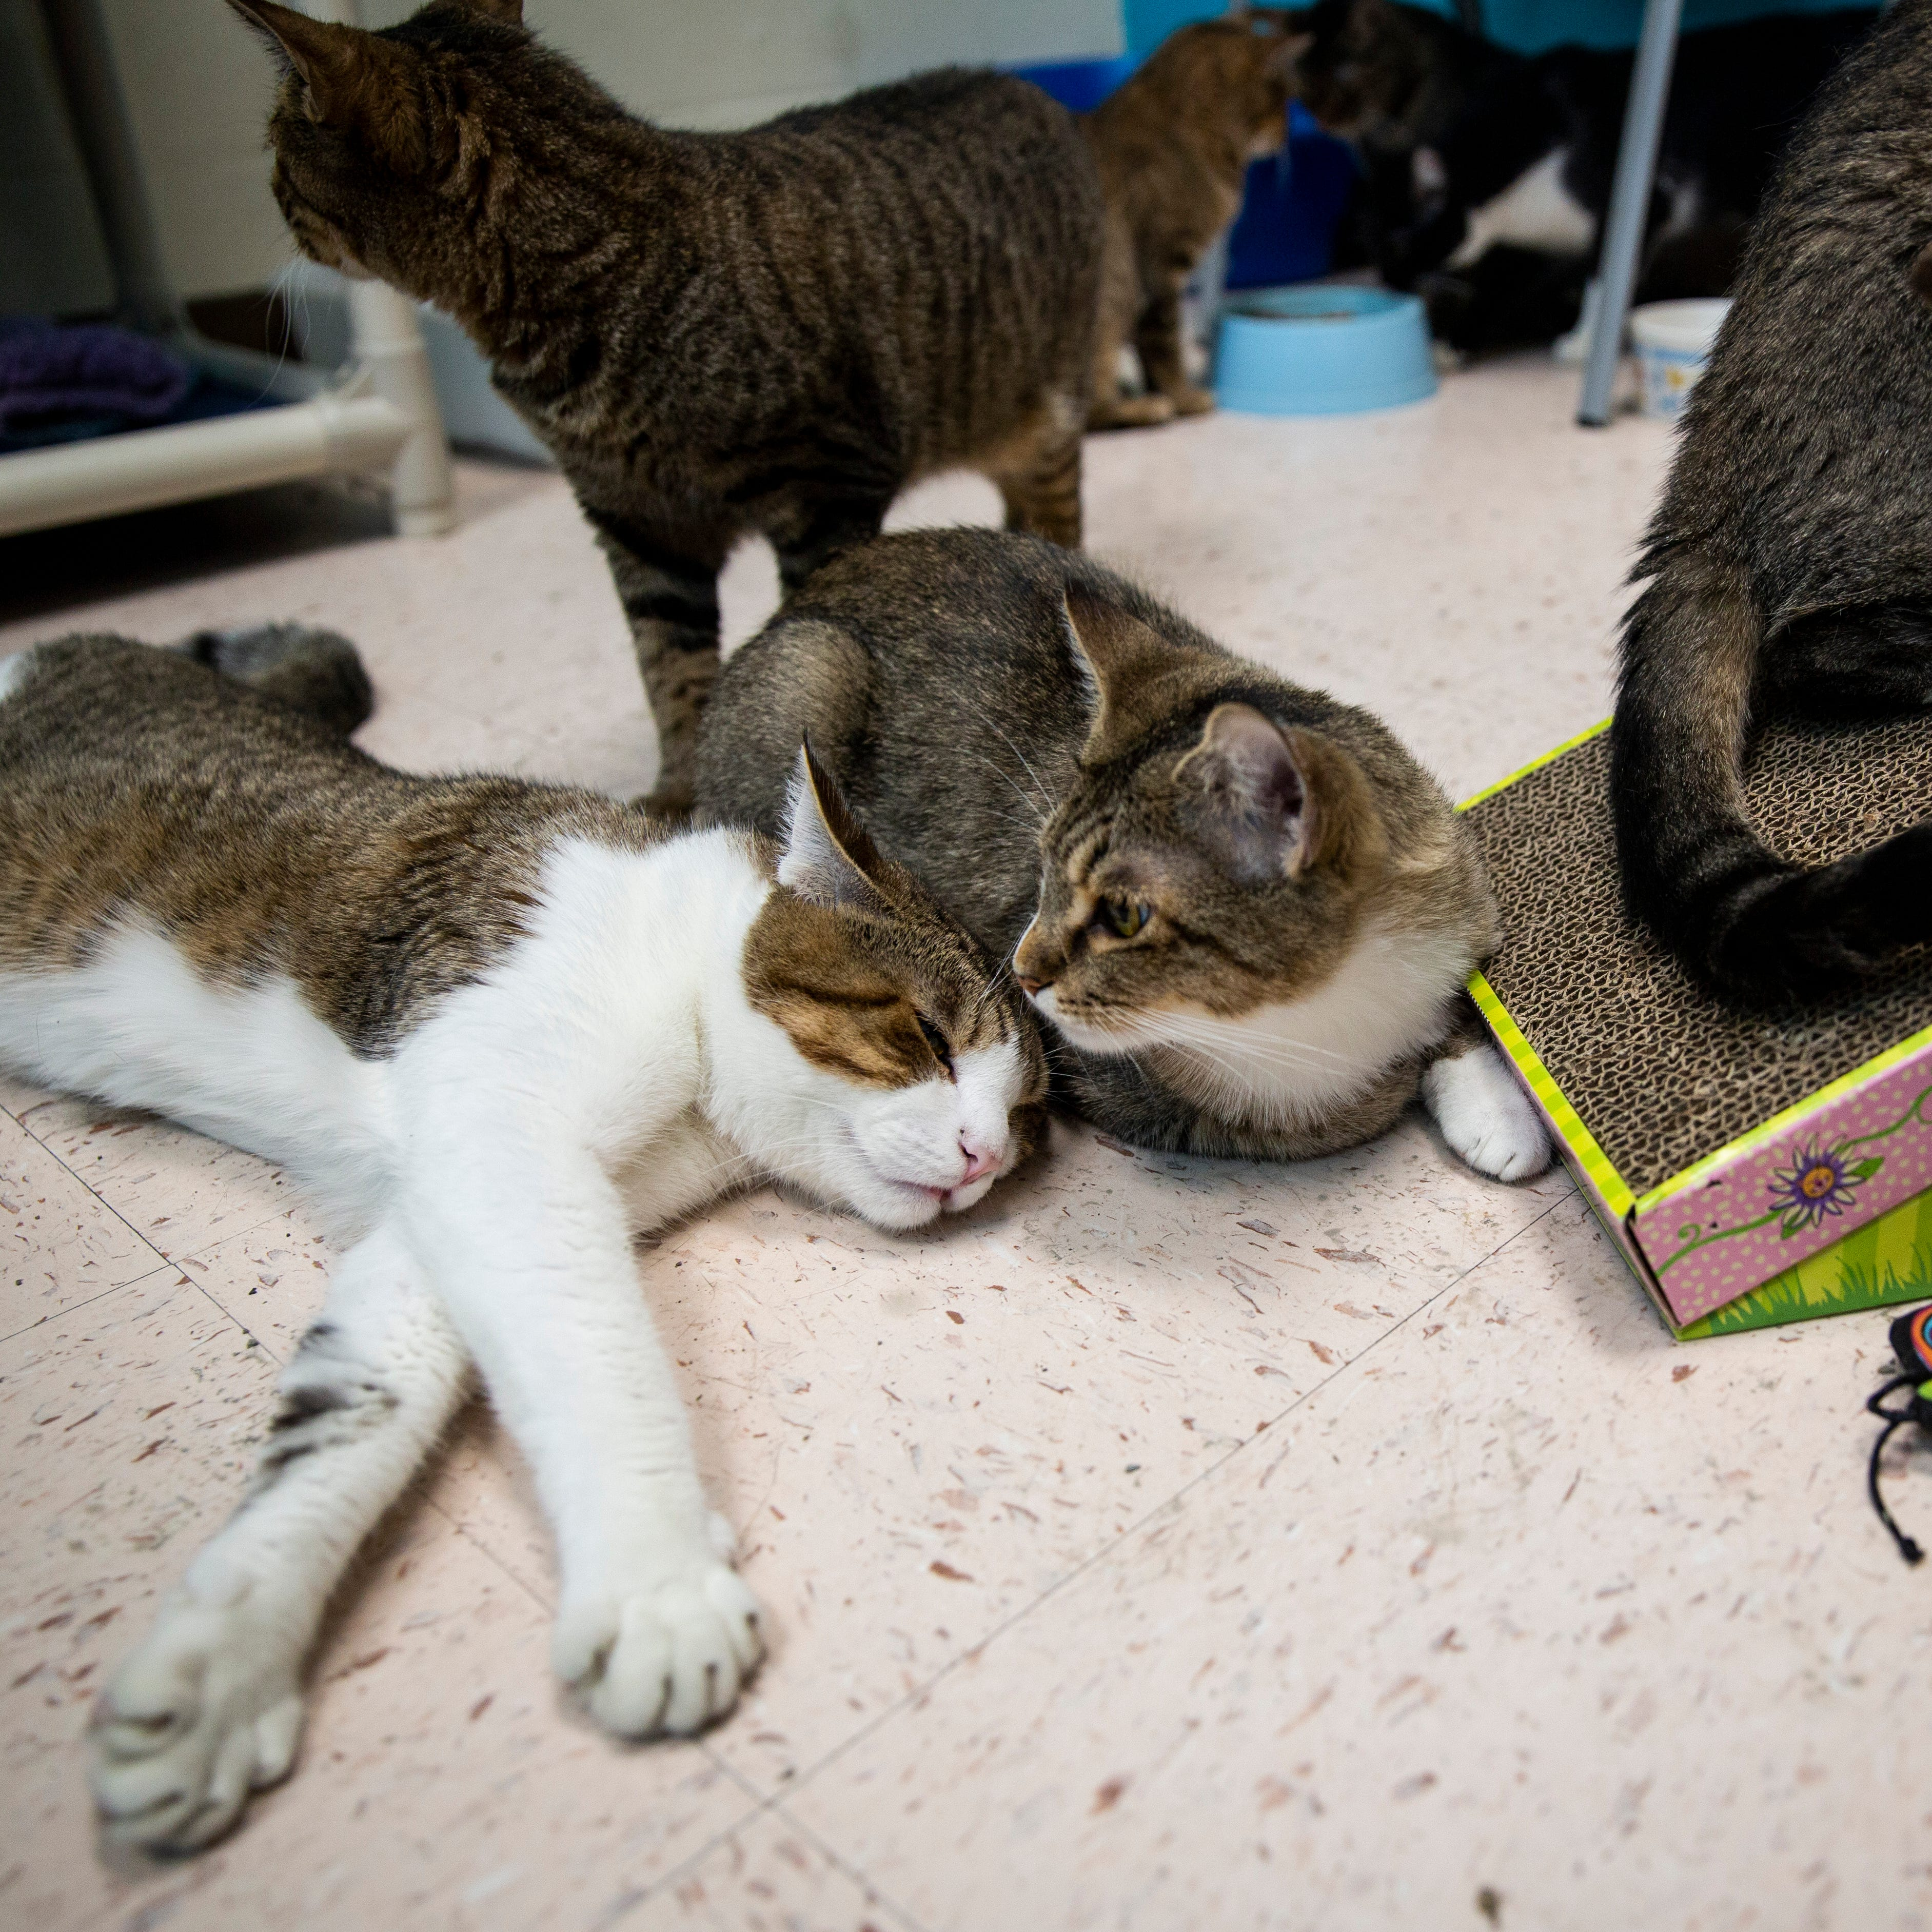 Last of 31 cats rescued in North Naples hoarding case now ready for adoption